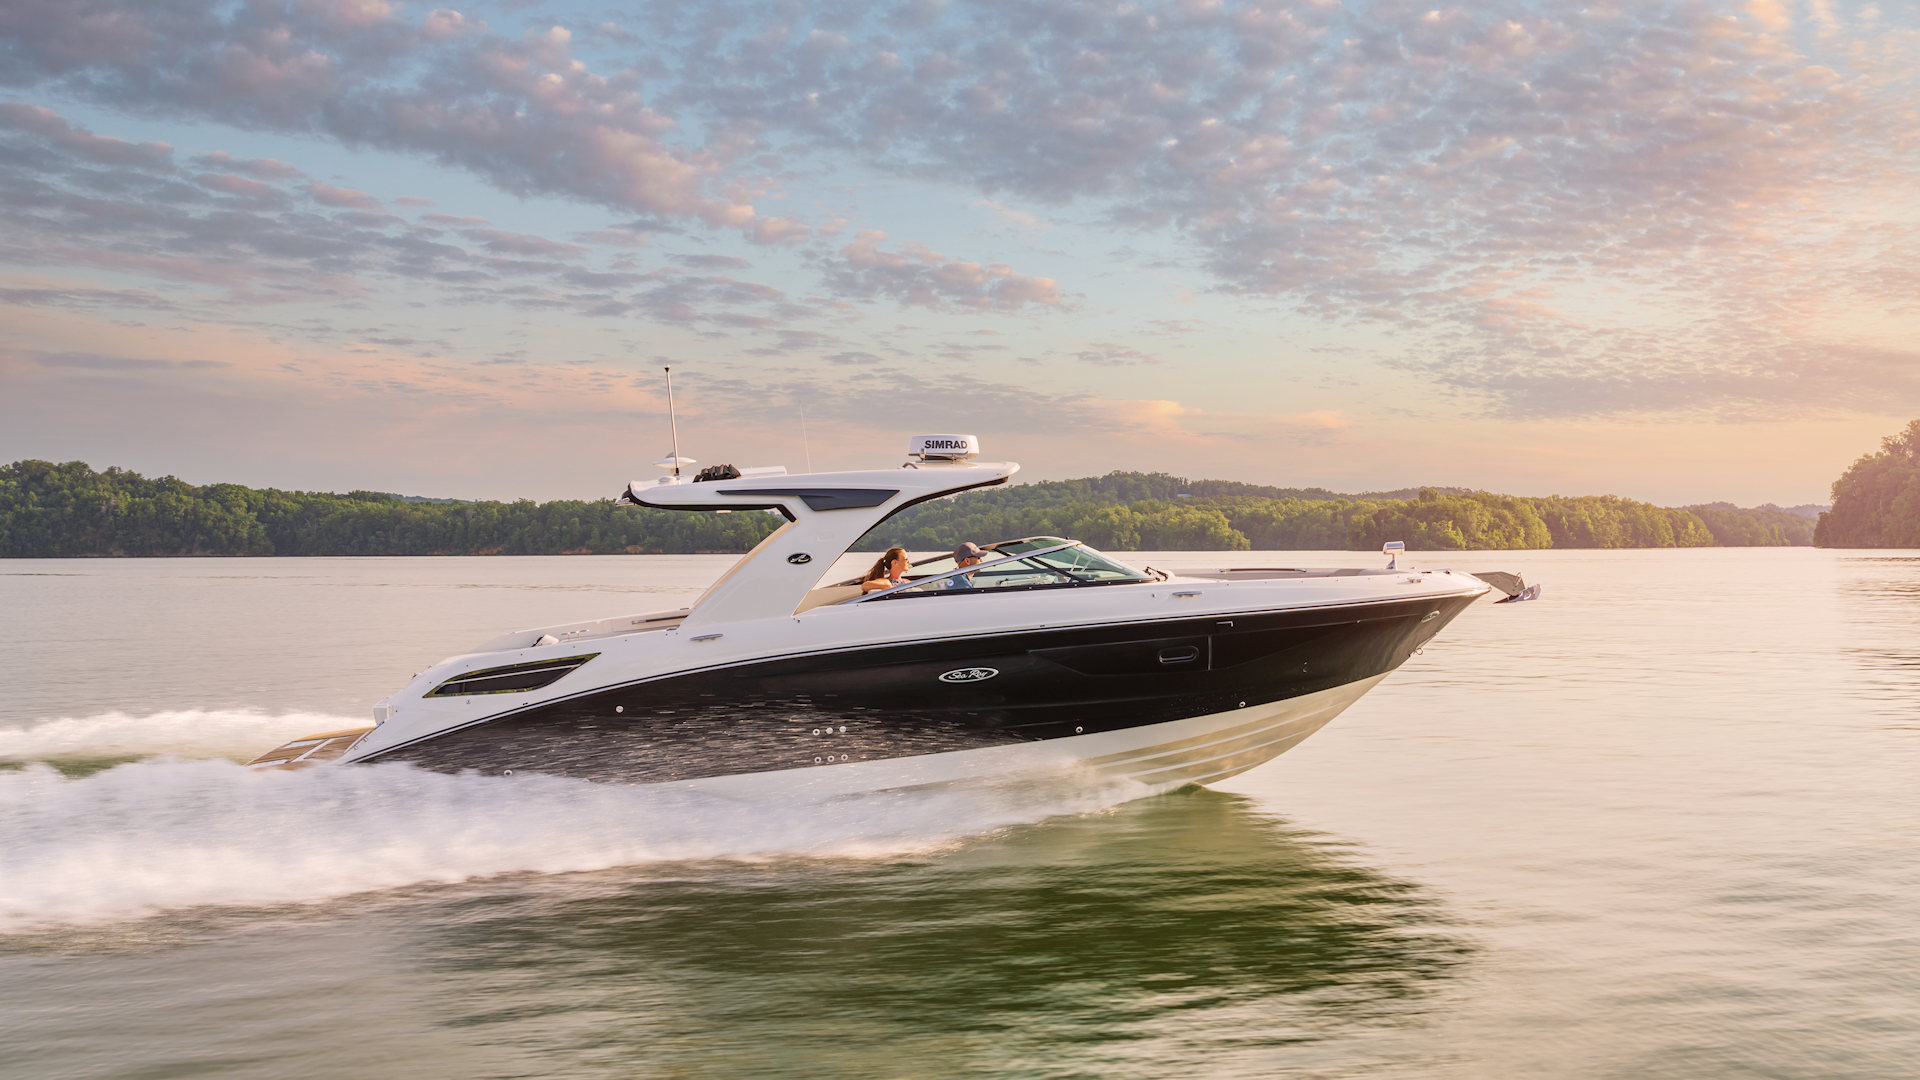 360 VR Virtual Tours of the Sea Ray SLX 350 – VRCLOUD